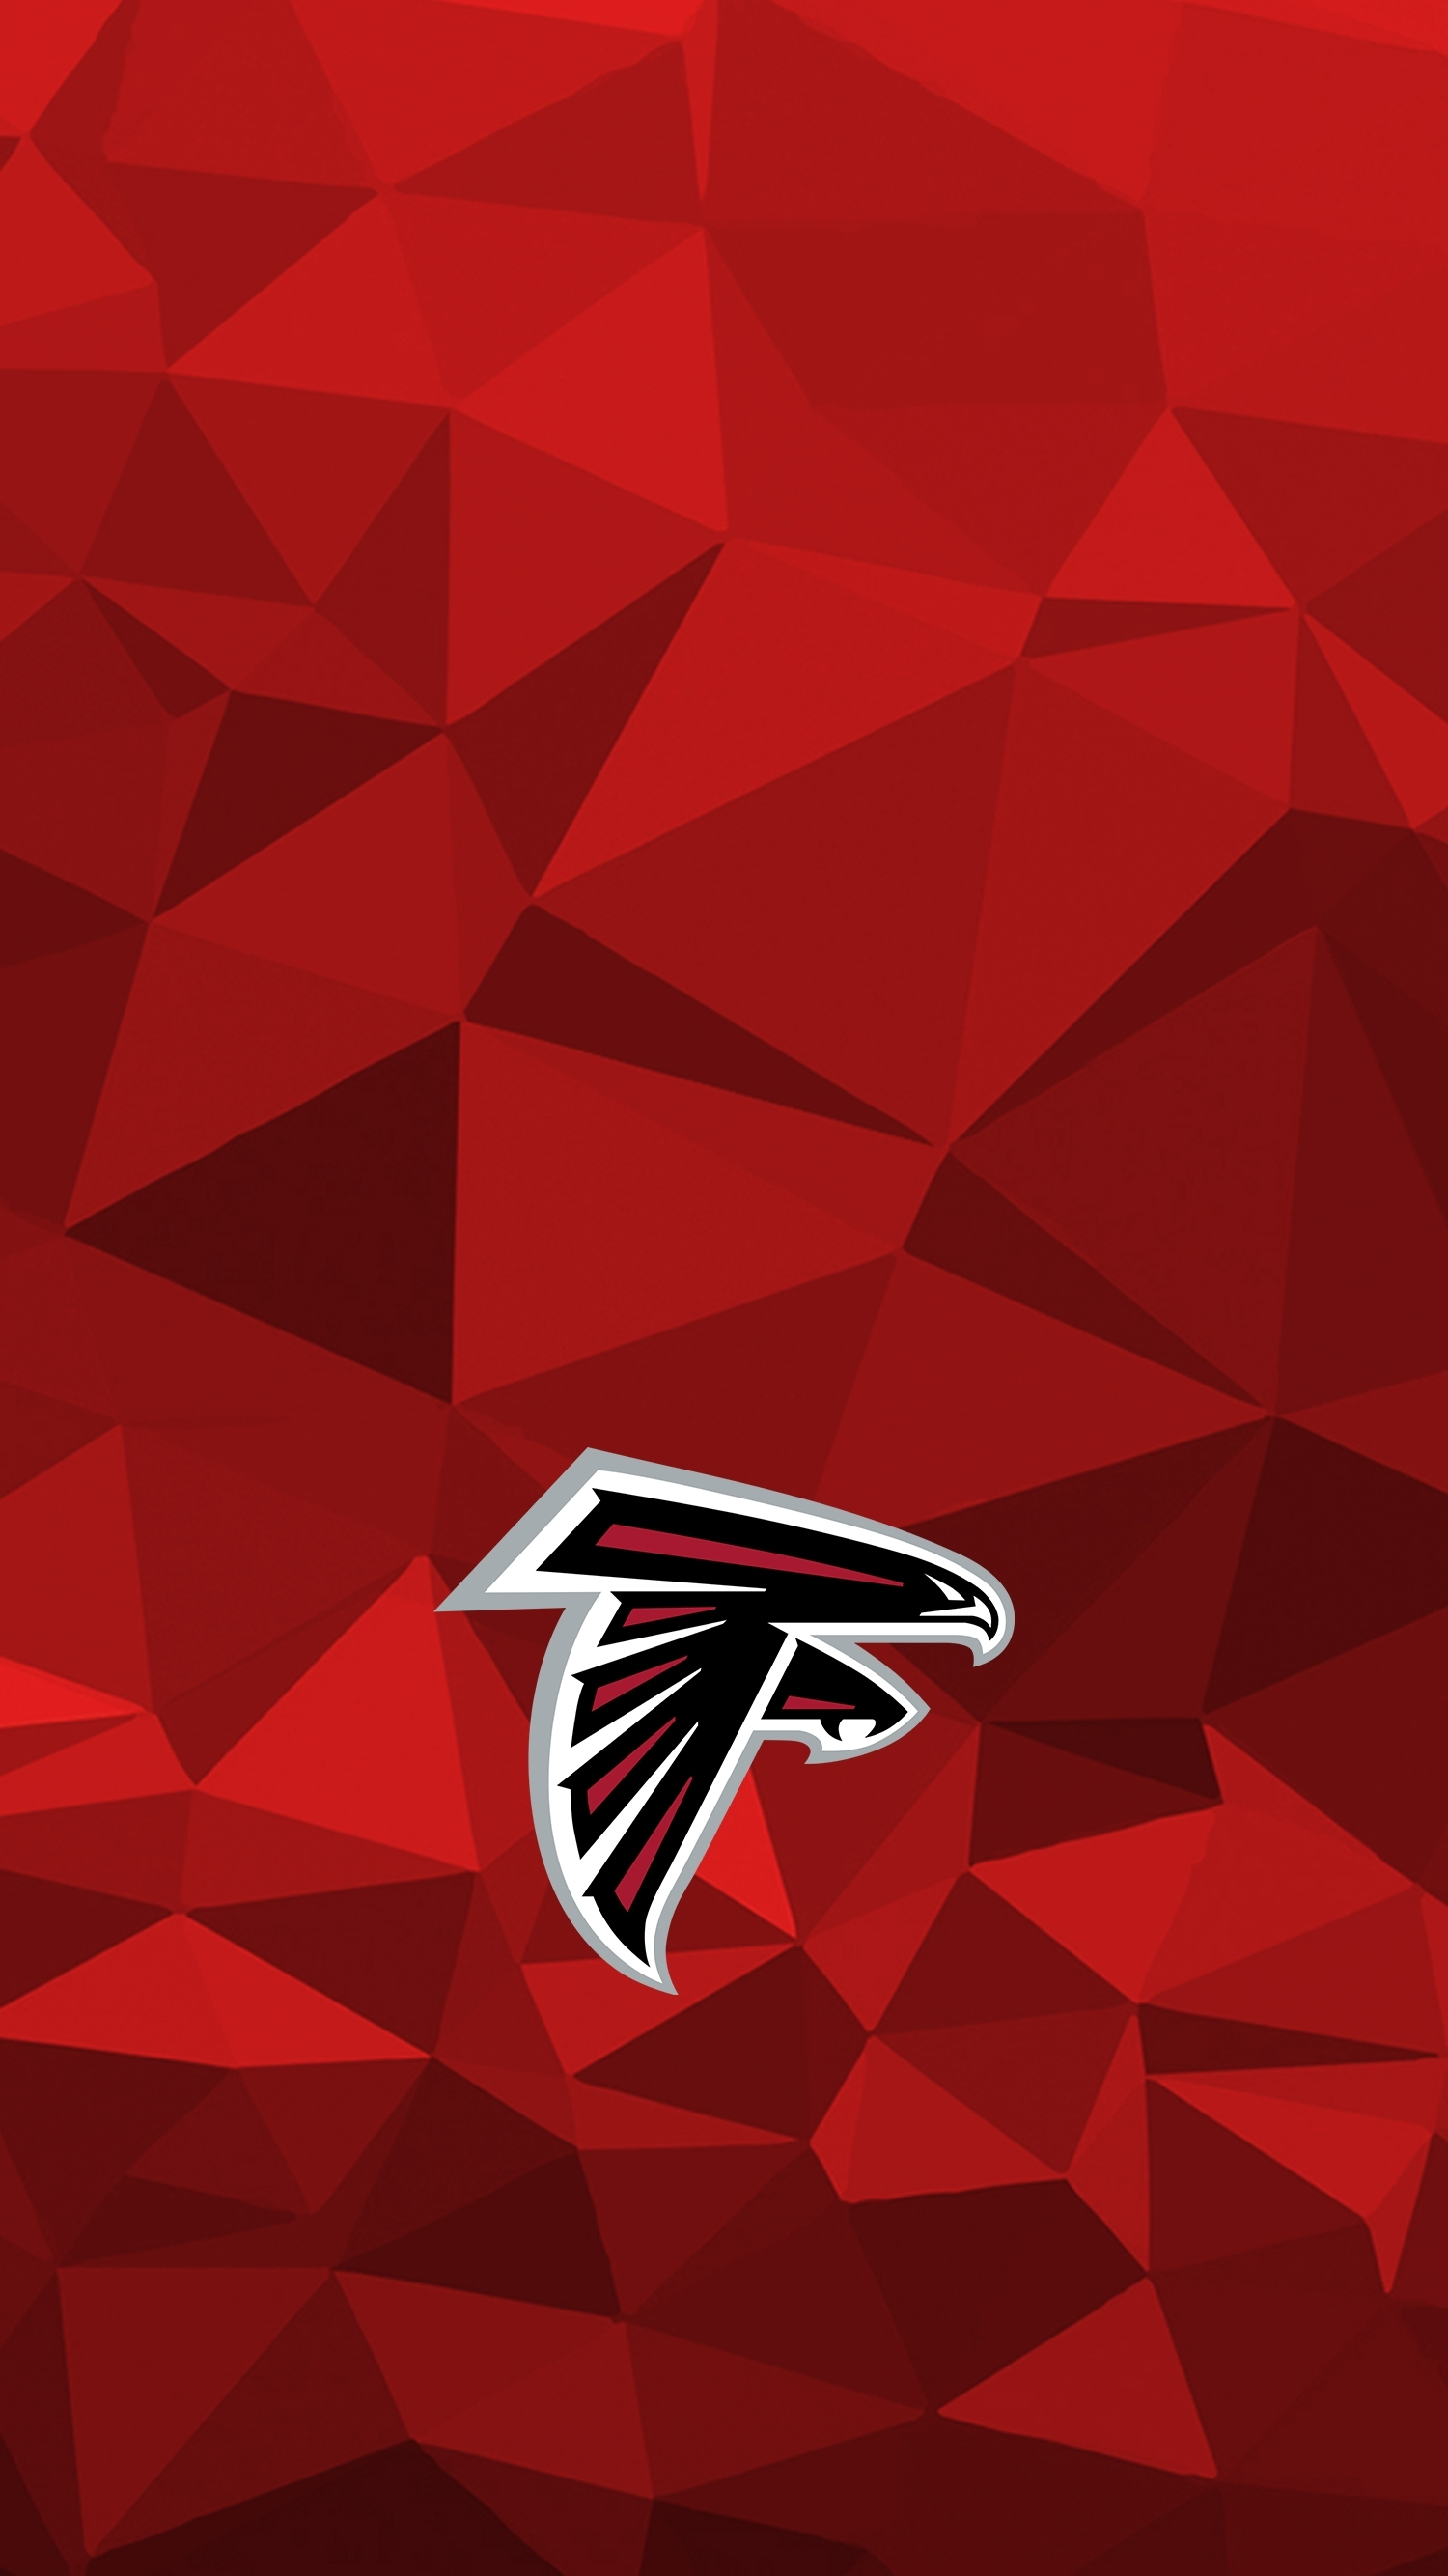 atlanta falcons iphone wallpaper - album on imgur